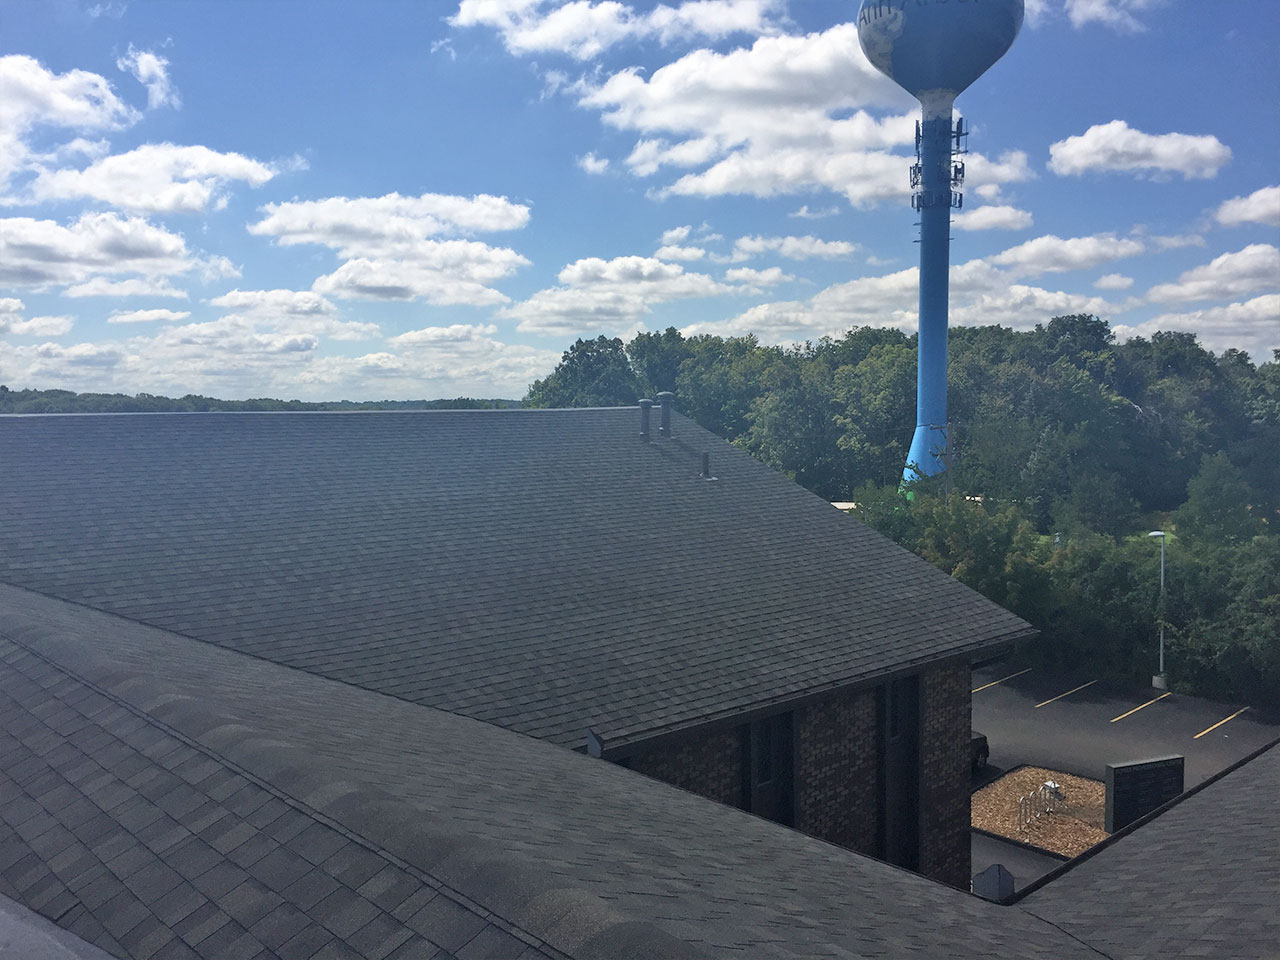 Commercial Roof Replacement On Three Story Office Building